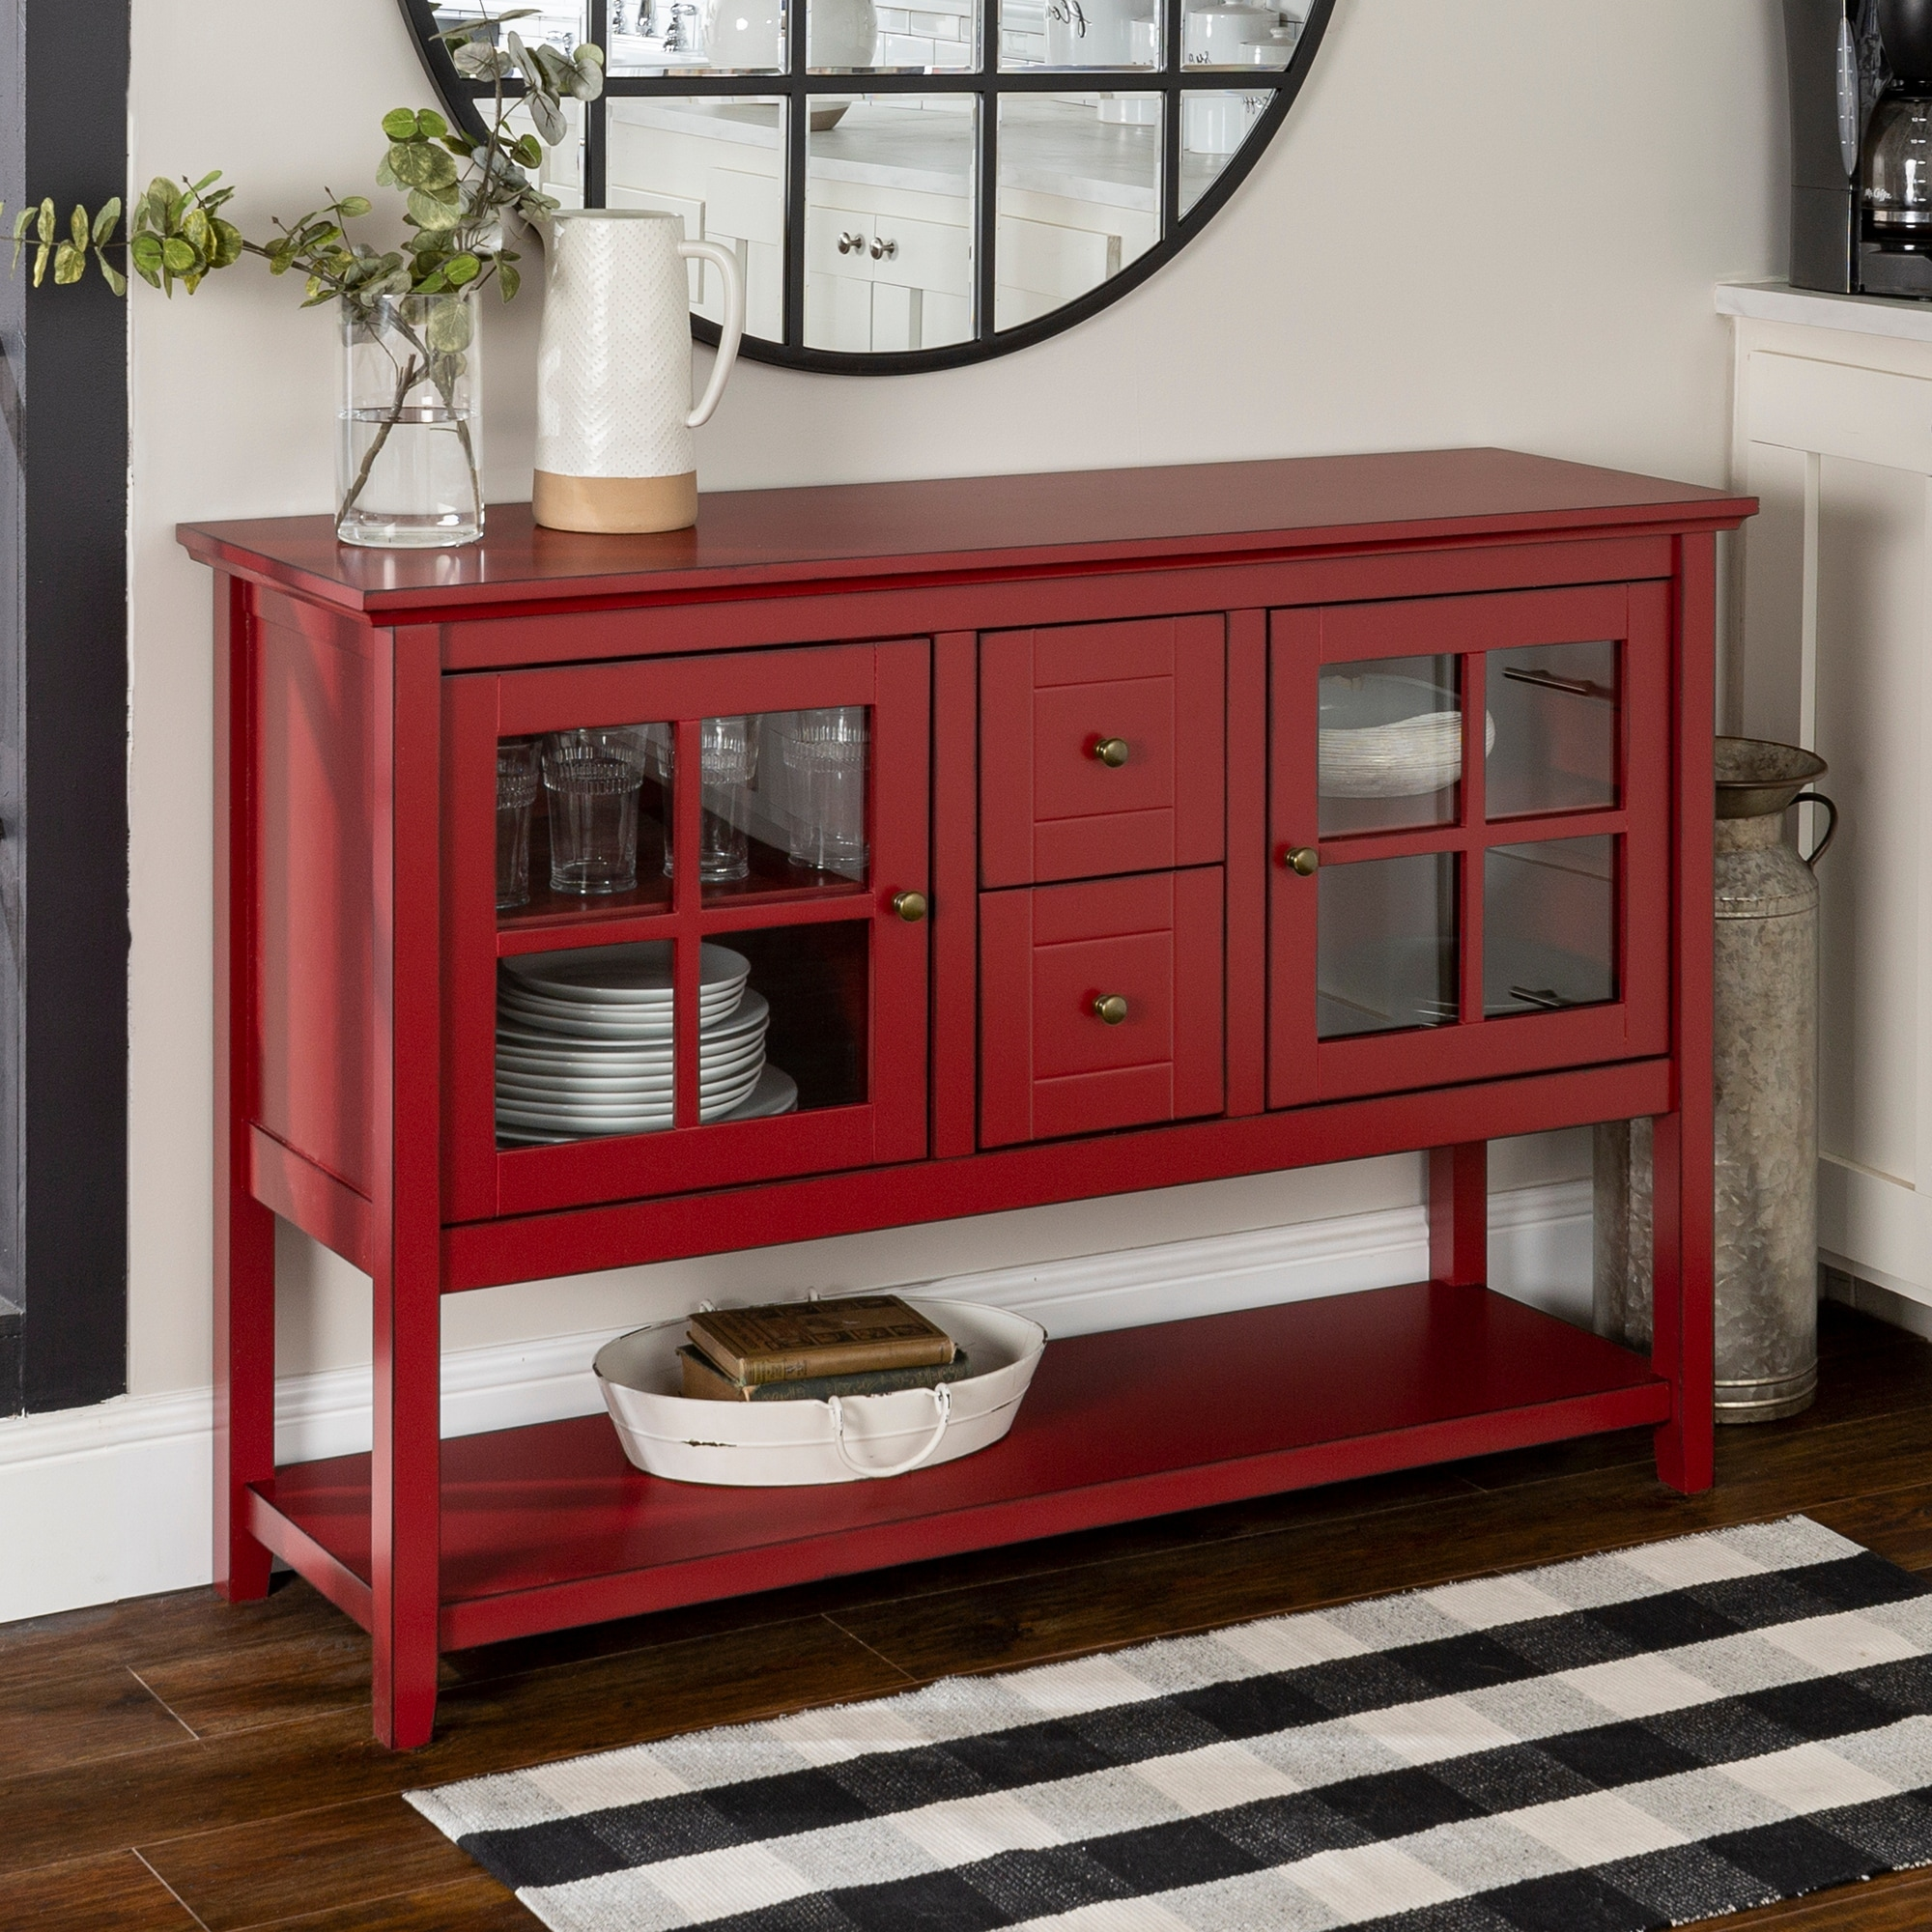 Shop Middlebrook Designs 52 Inch Antique Red Buffet Cabinet Tv Console On Sale Overstock 11770499